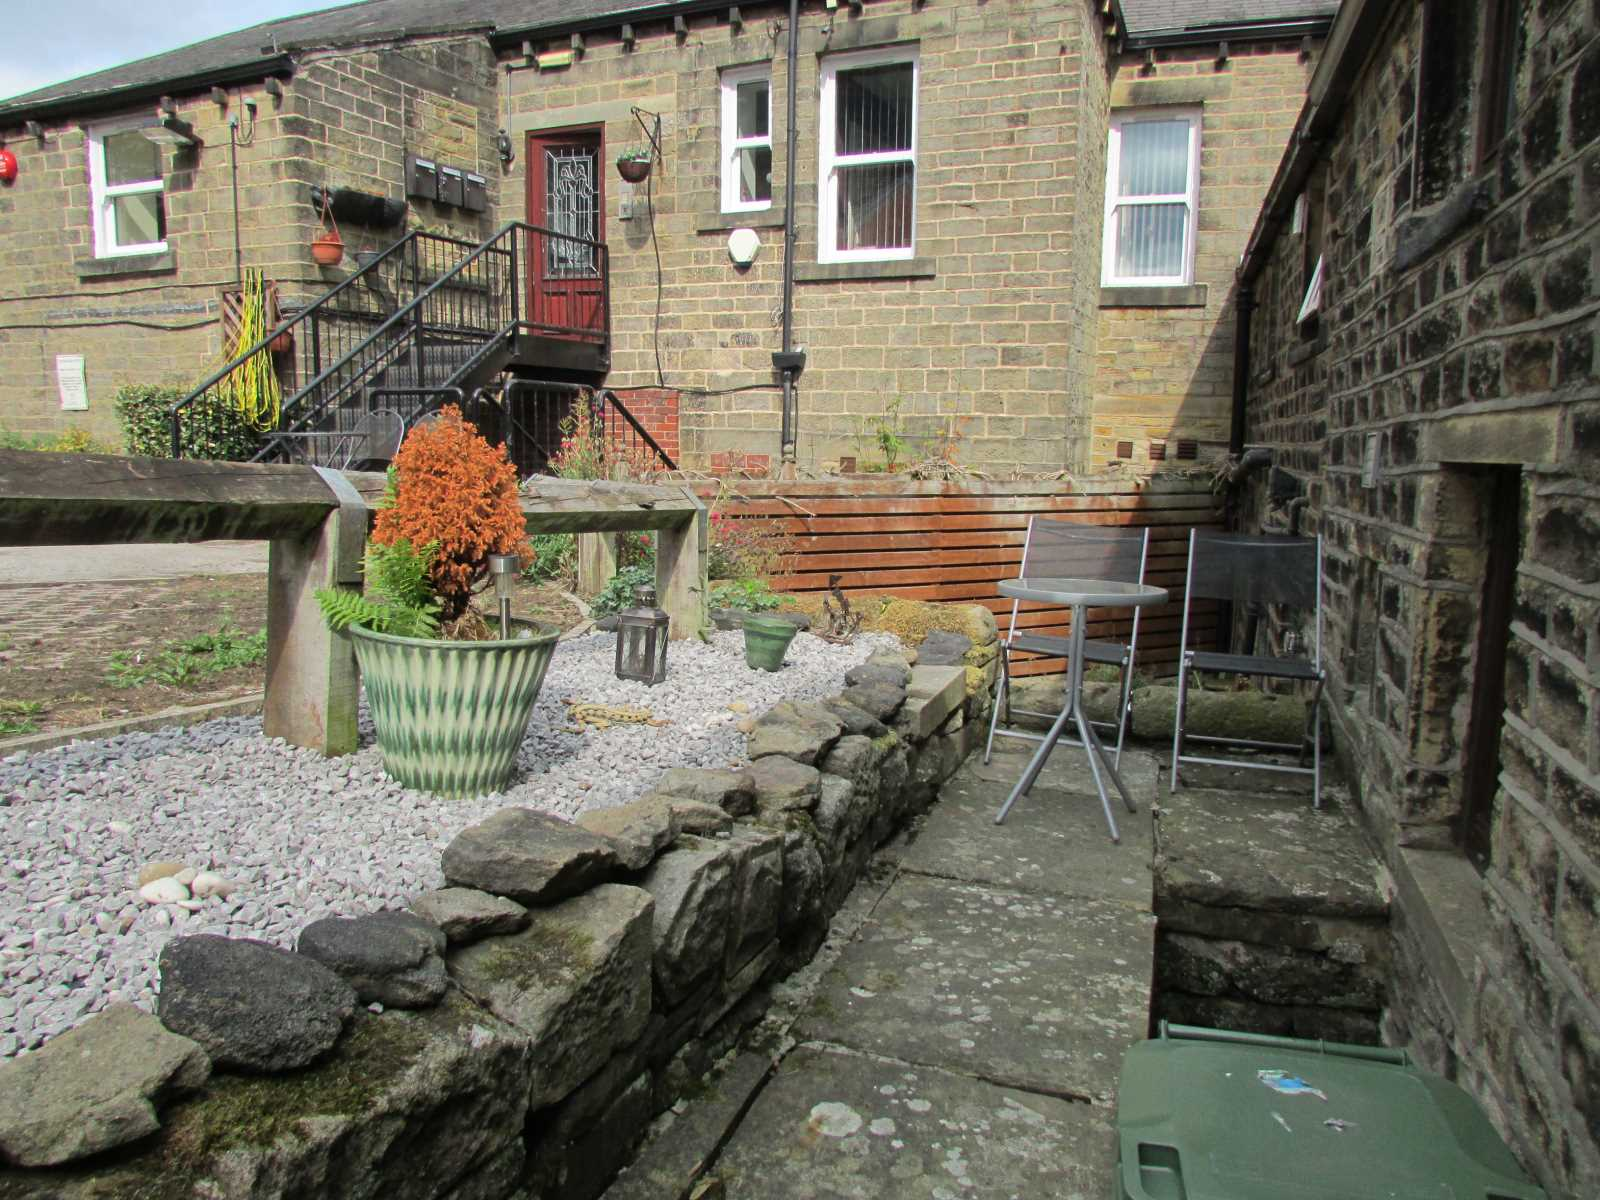 56 Wooldale Road, Wooldale, Holmfirth, HD9 1QJ